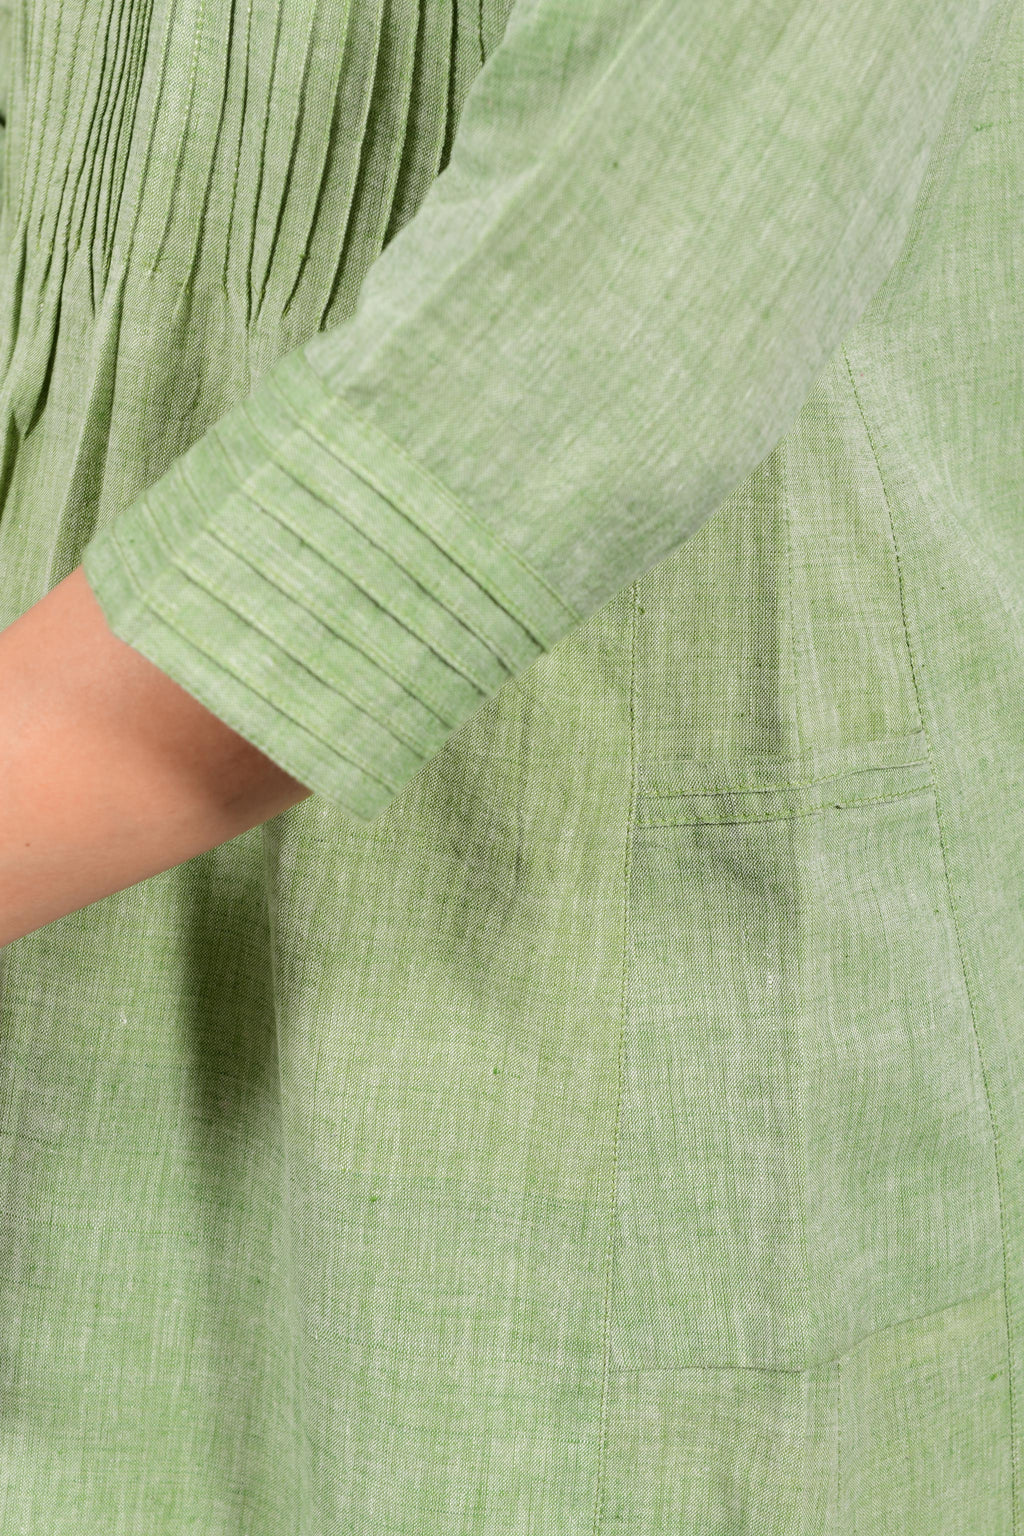 Close up details of a olive green chambray handspun and handwoven khadi cotton dress-kurta with pintucks on front by Cotton Rack.